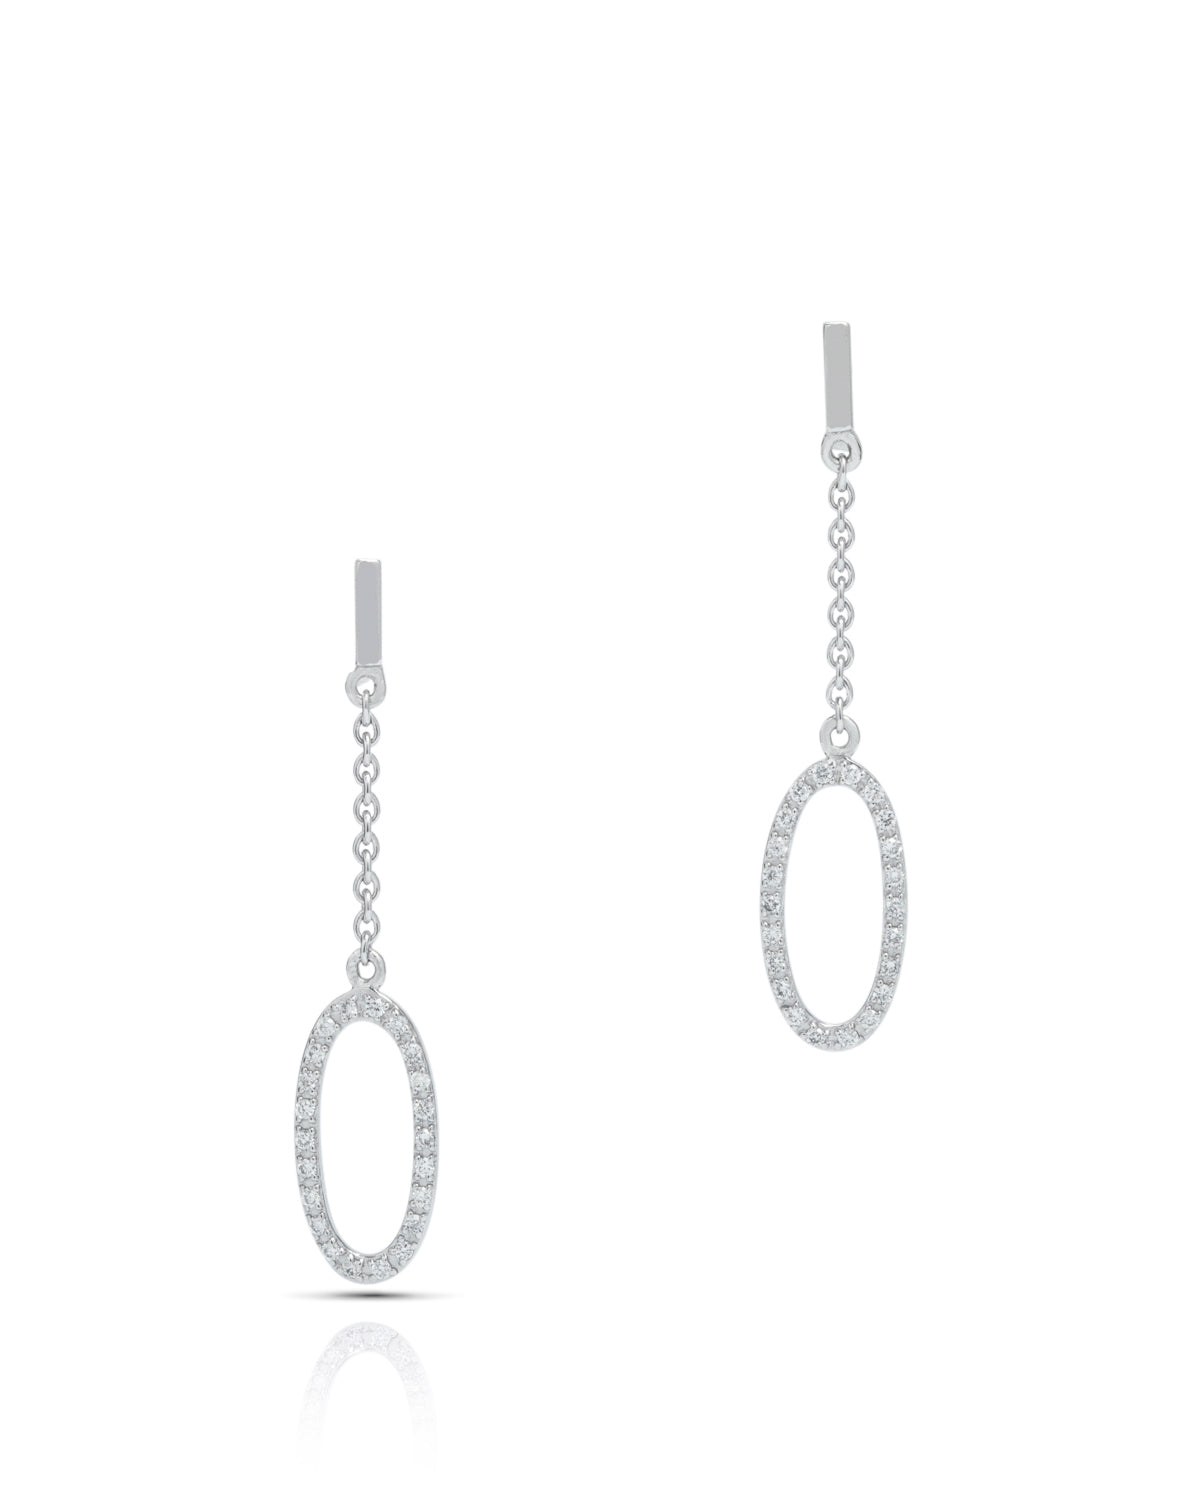 Oval Drop Earrings - Charles Koll Jewellers